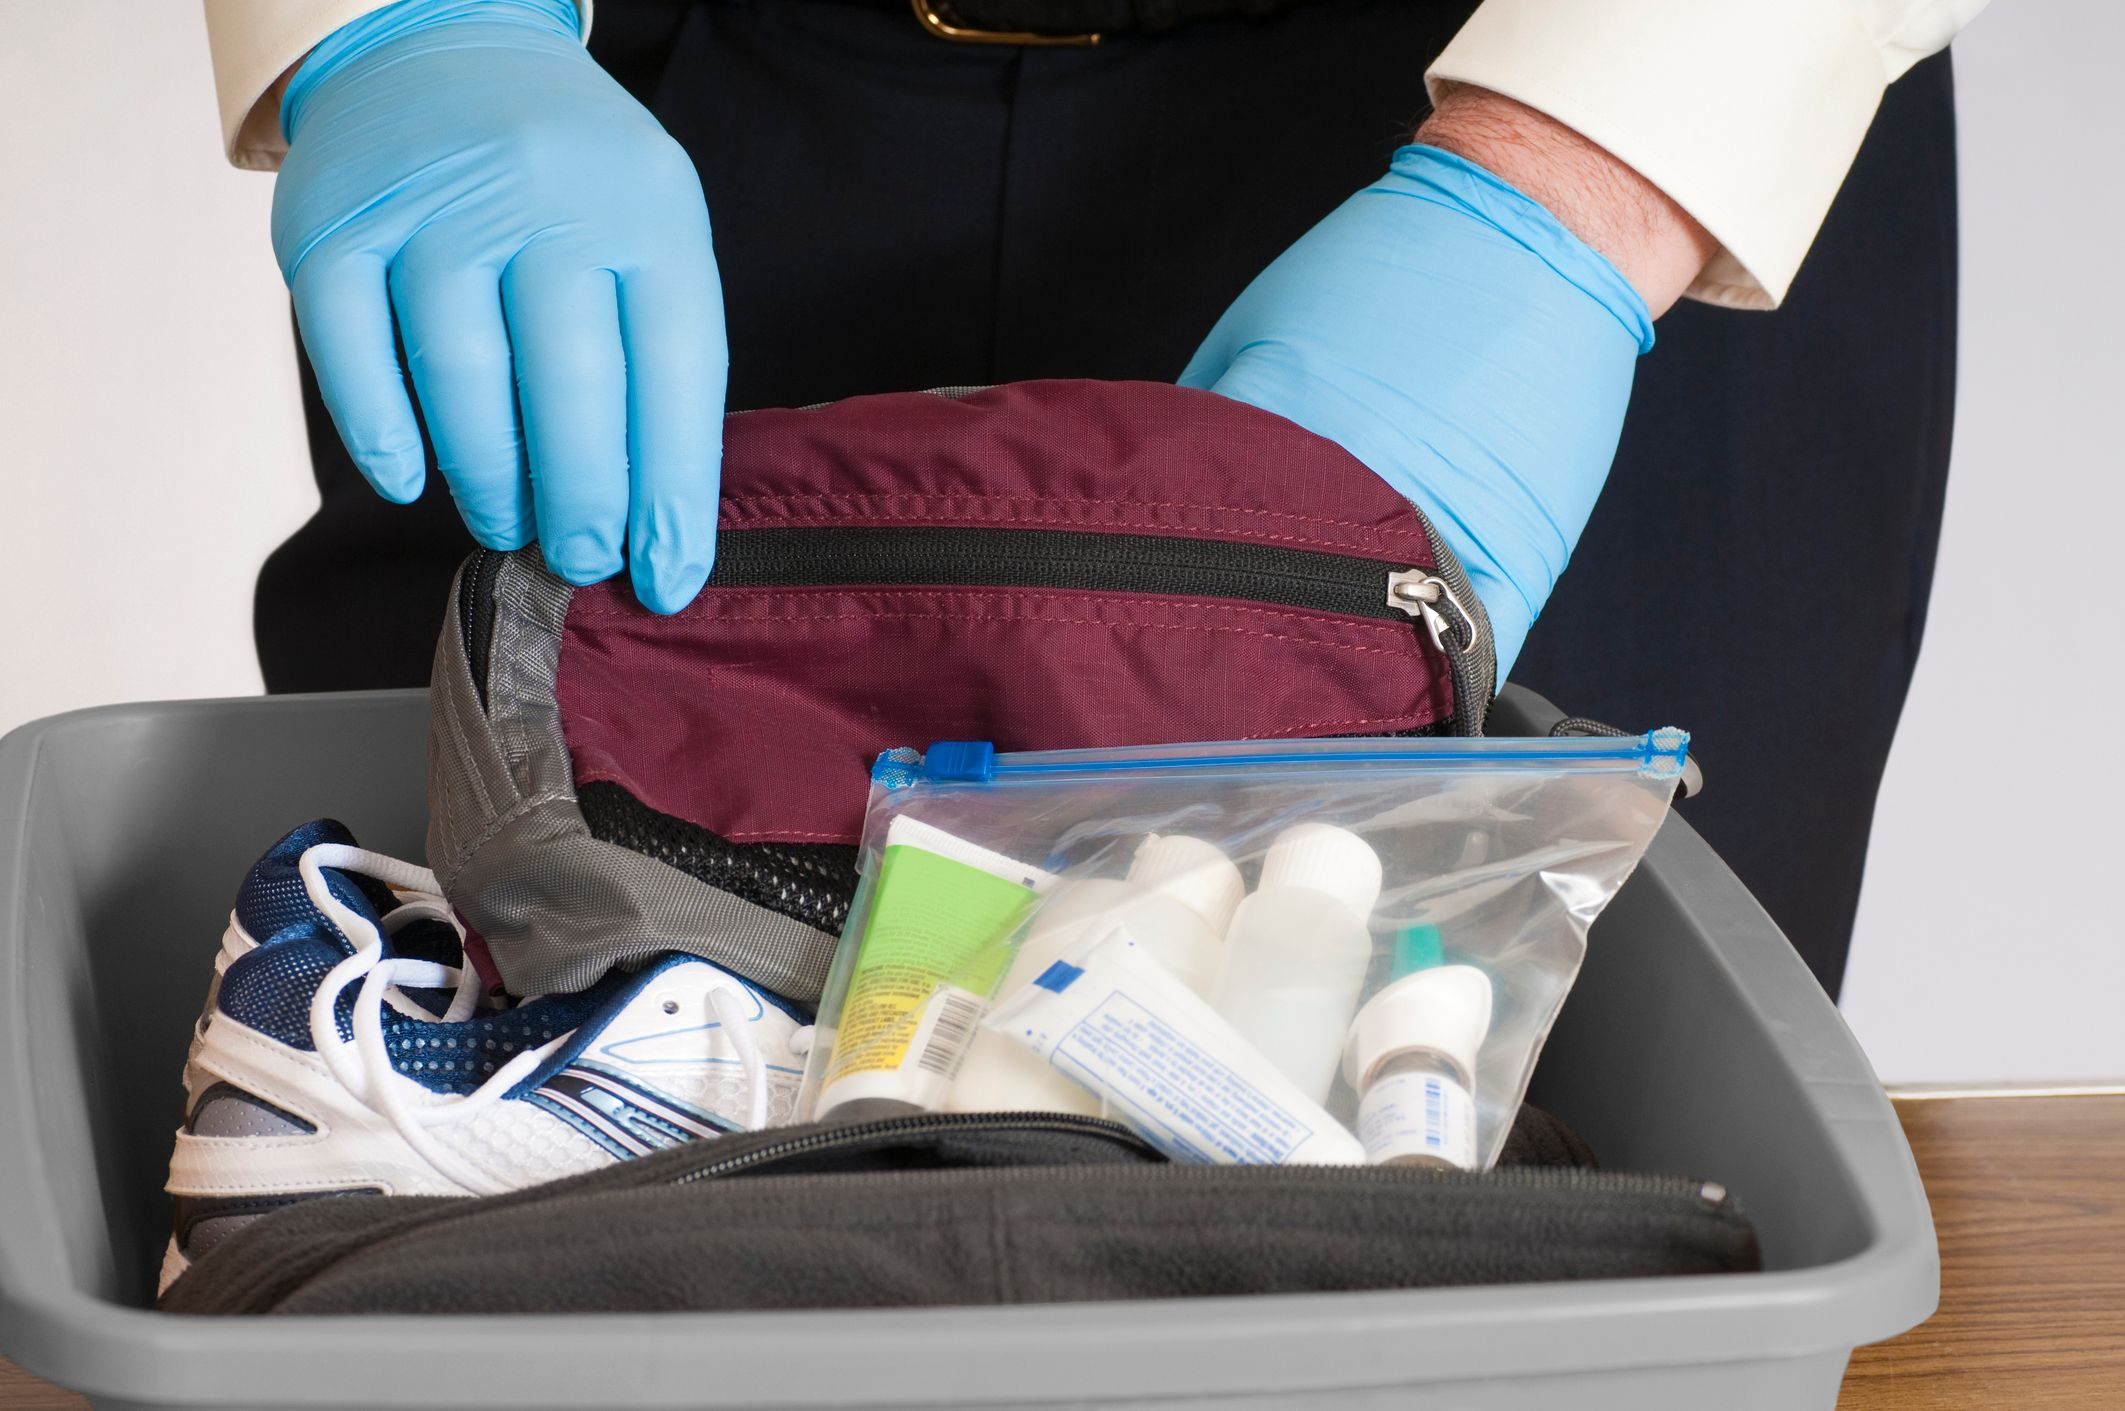 1540424245373_iStock-airport-baggage-search.jpg